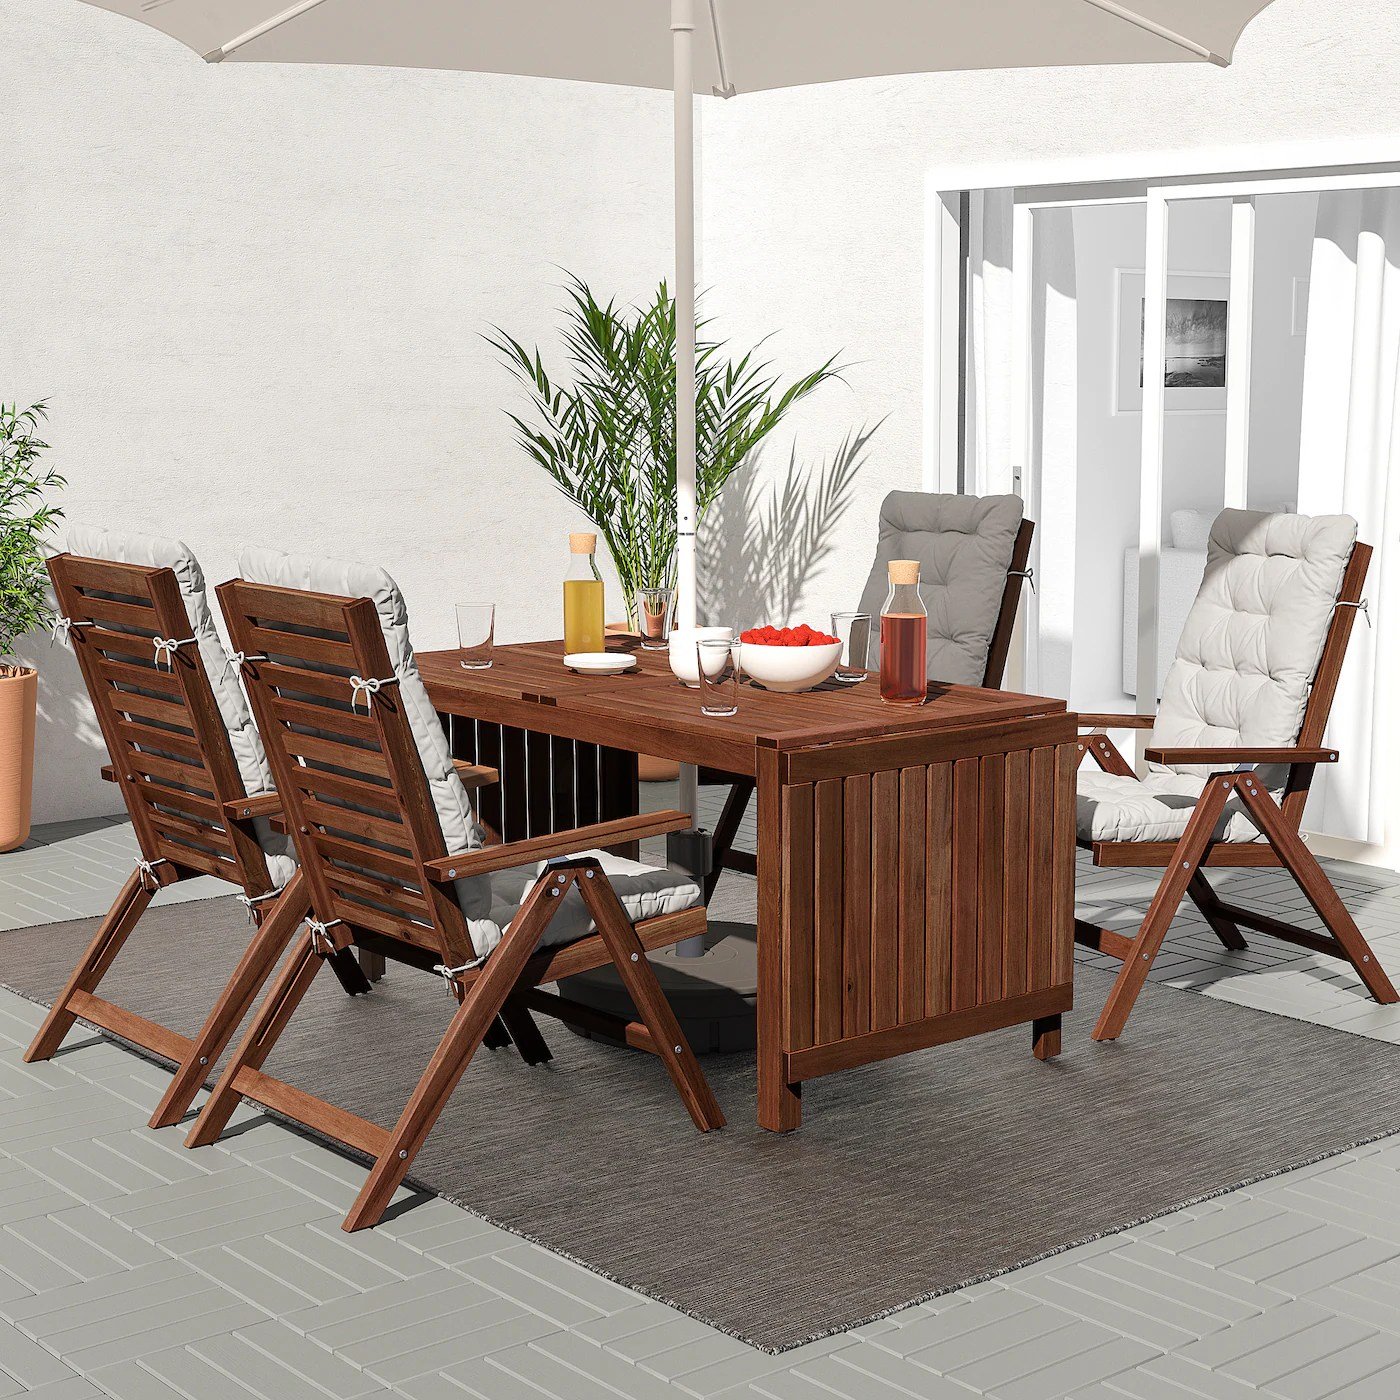 applaro drop leaf table outdoor brown stained 55 1 8 78 3 4 102 3 8x30 3 4